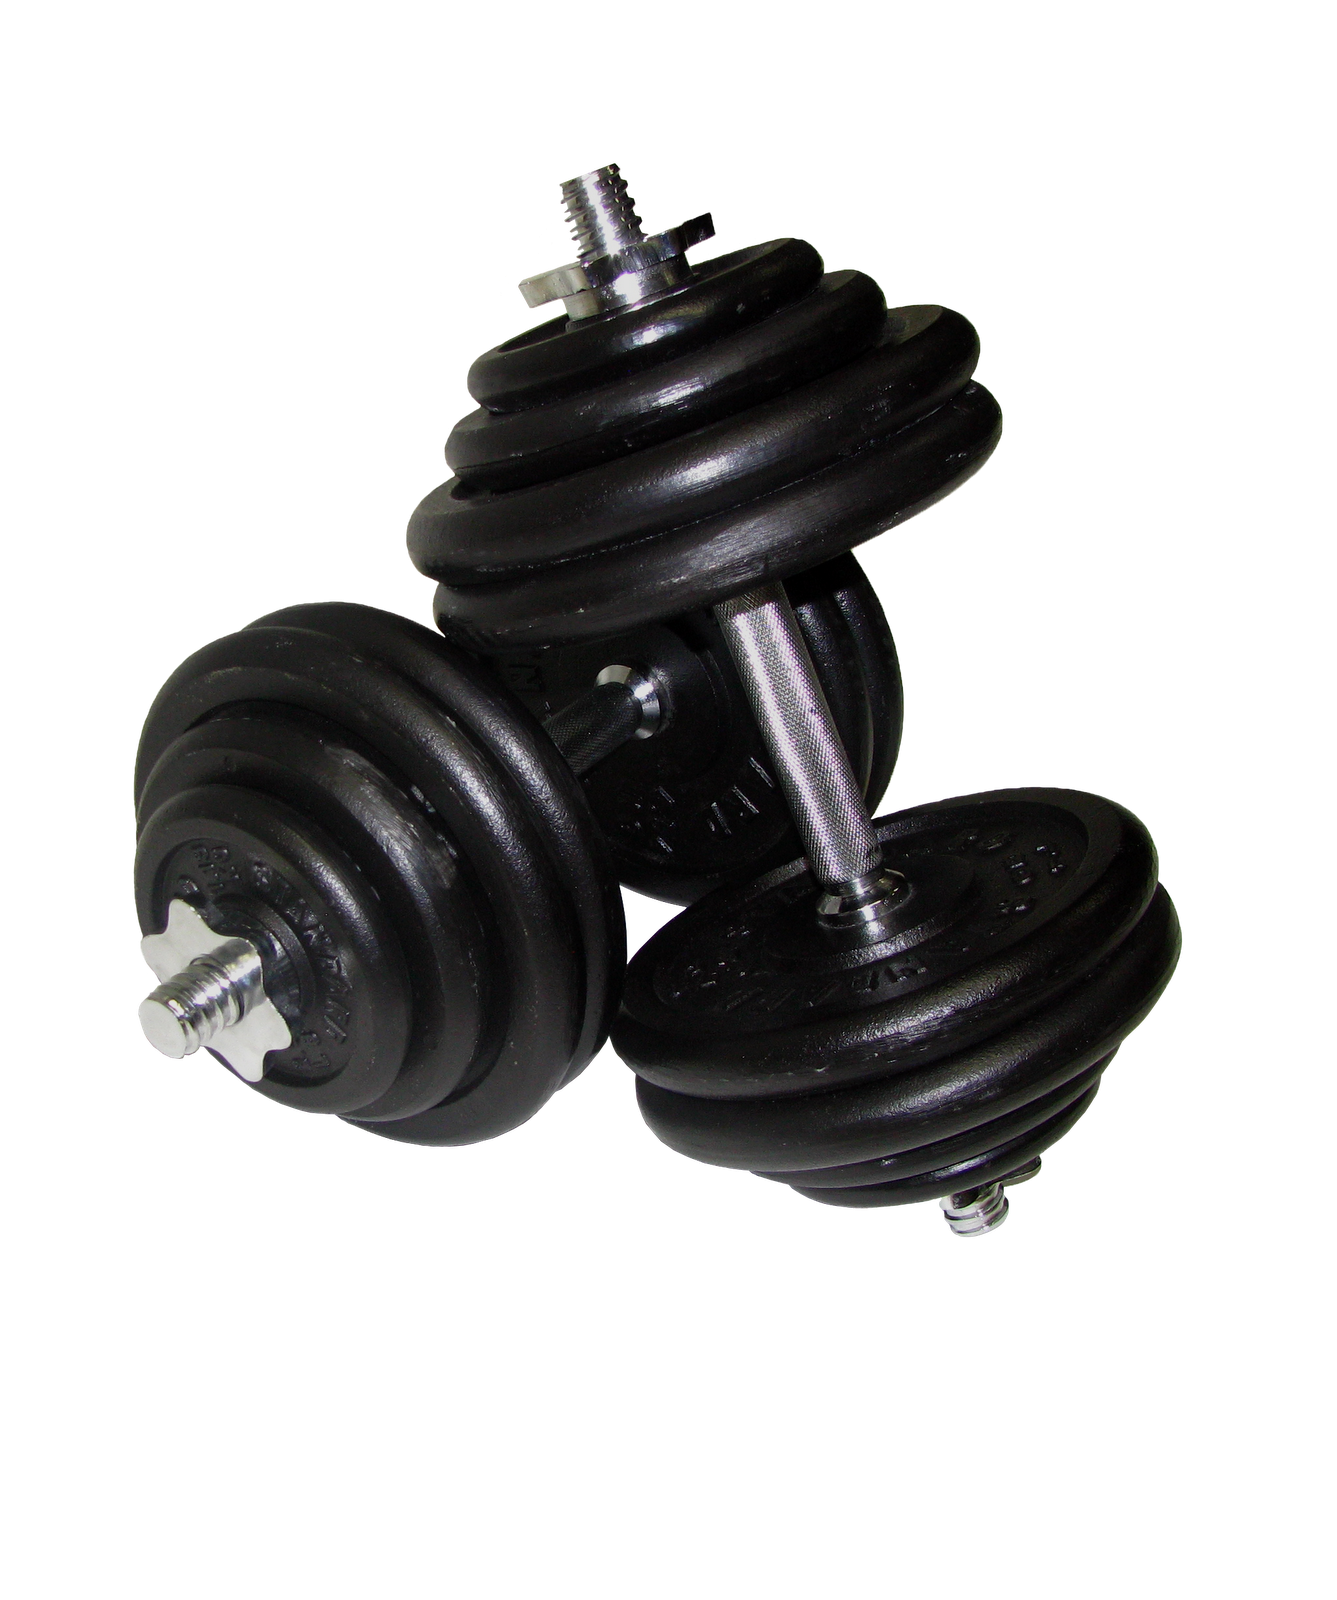 Fitness clipart hand weight. Dumbbells png transparent images